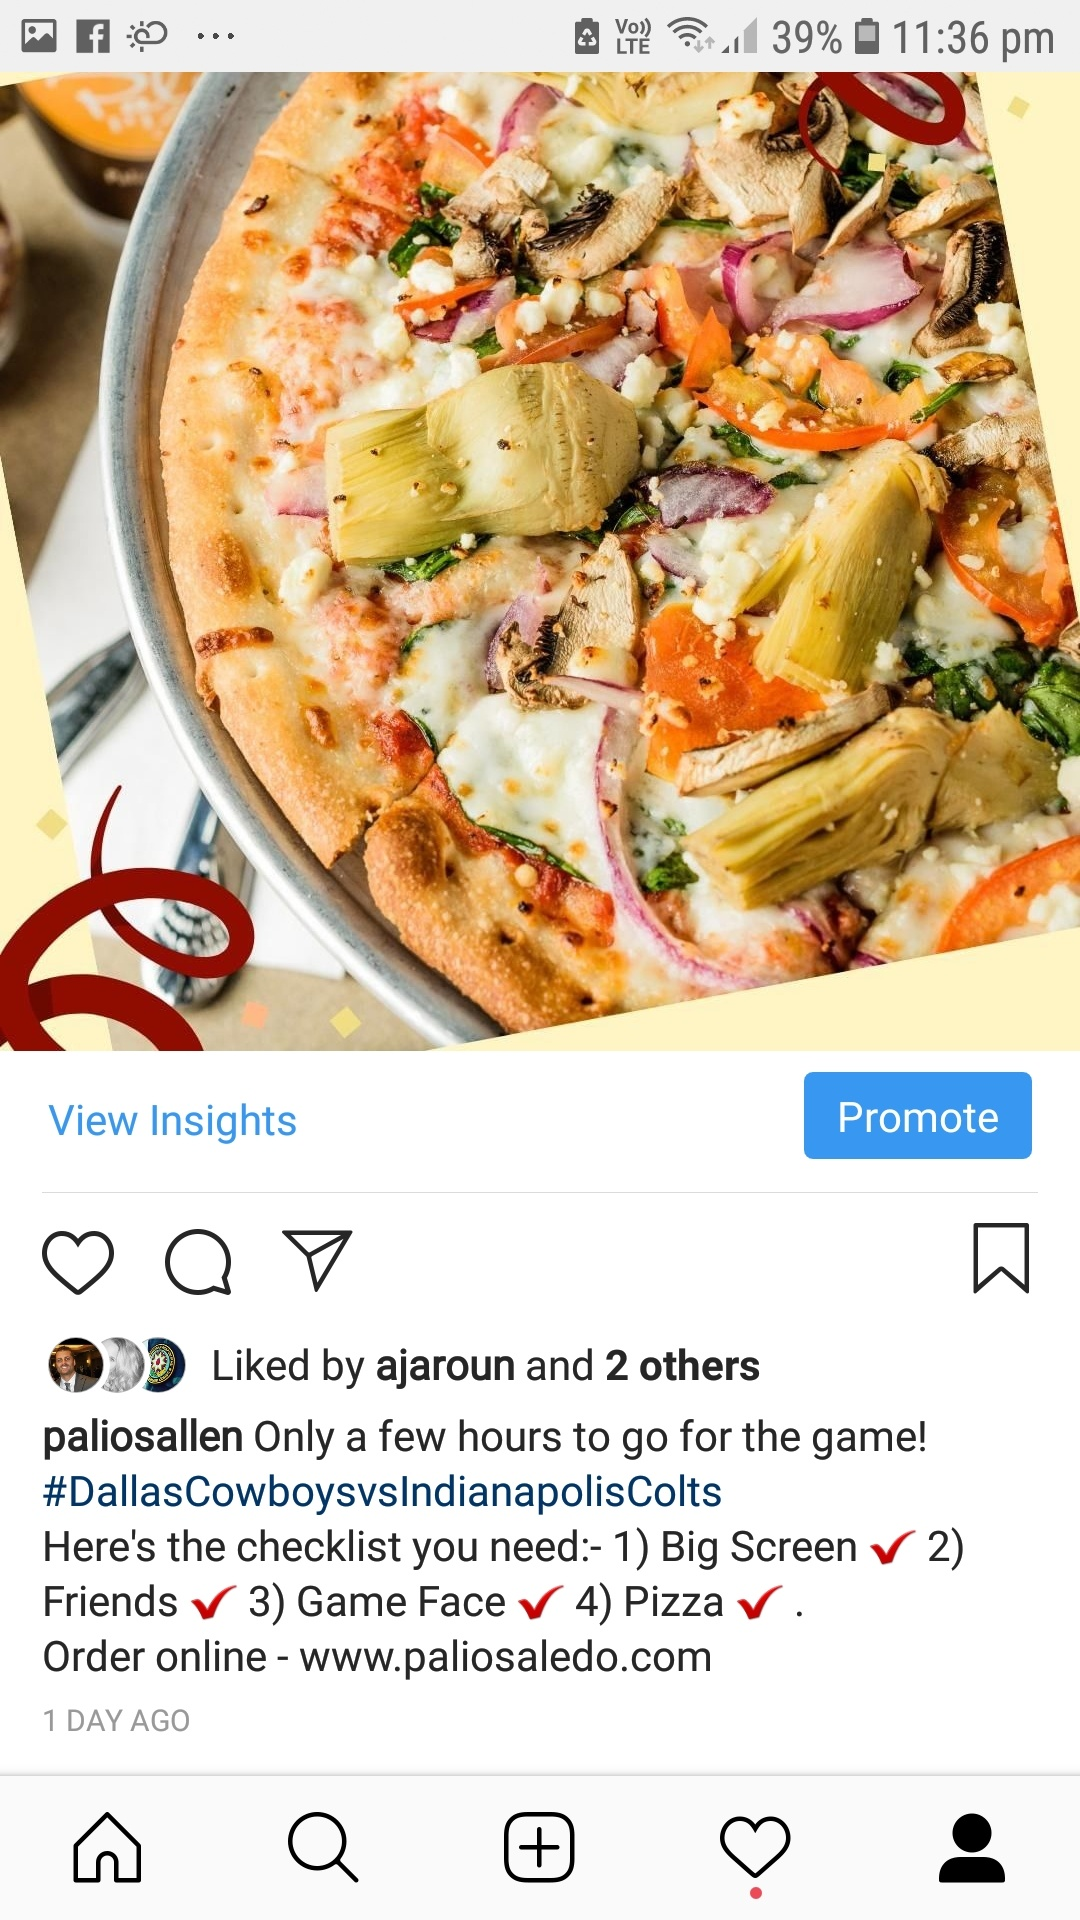 Create Promotions within the App- advertising on Instagram